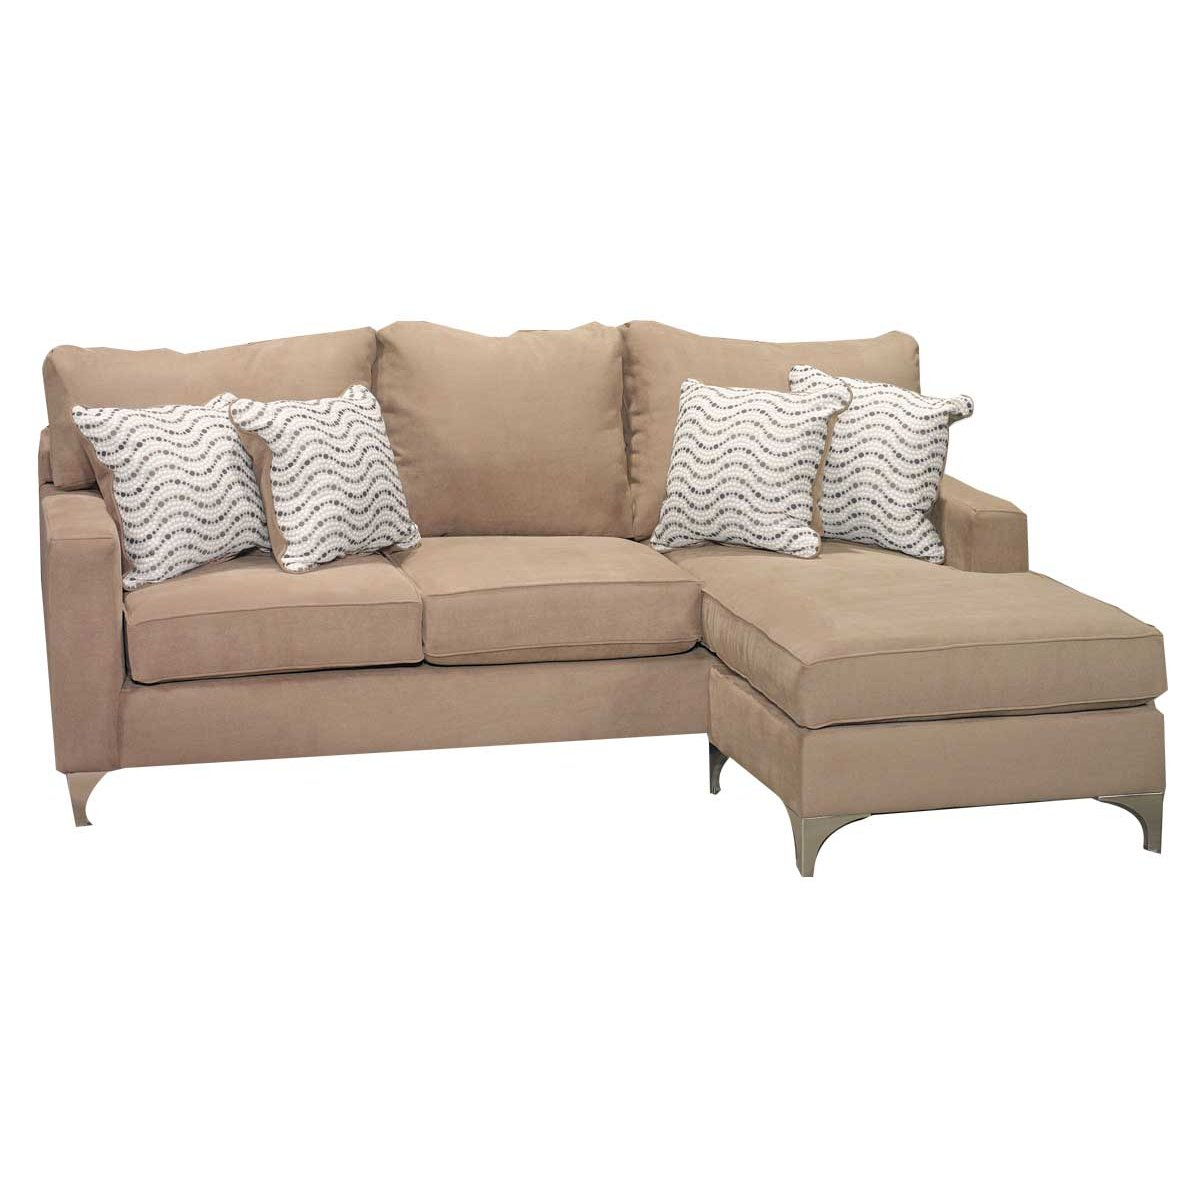 Tessa 90 cappuccino brown upholstered sofa chaise for Brown chaise sofa